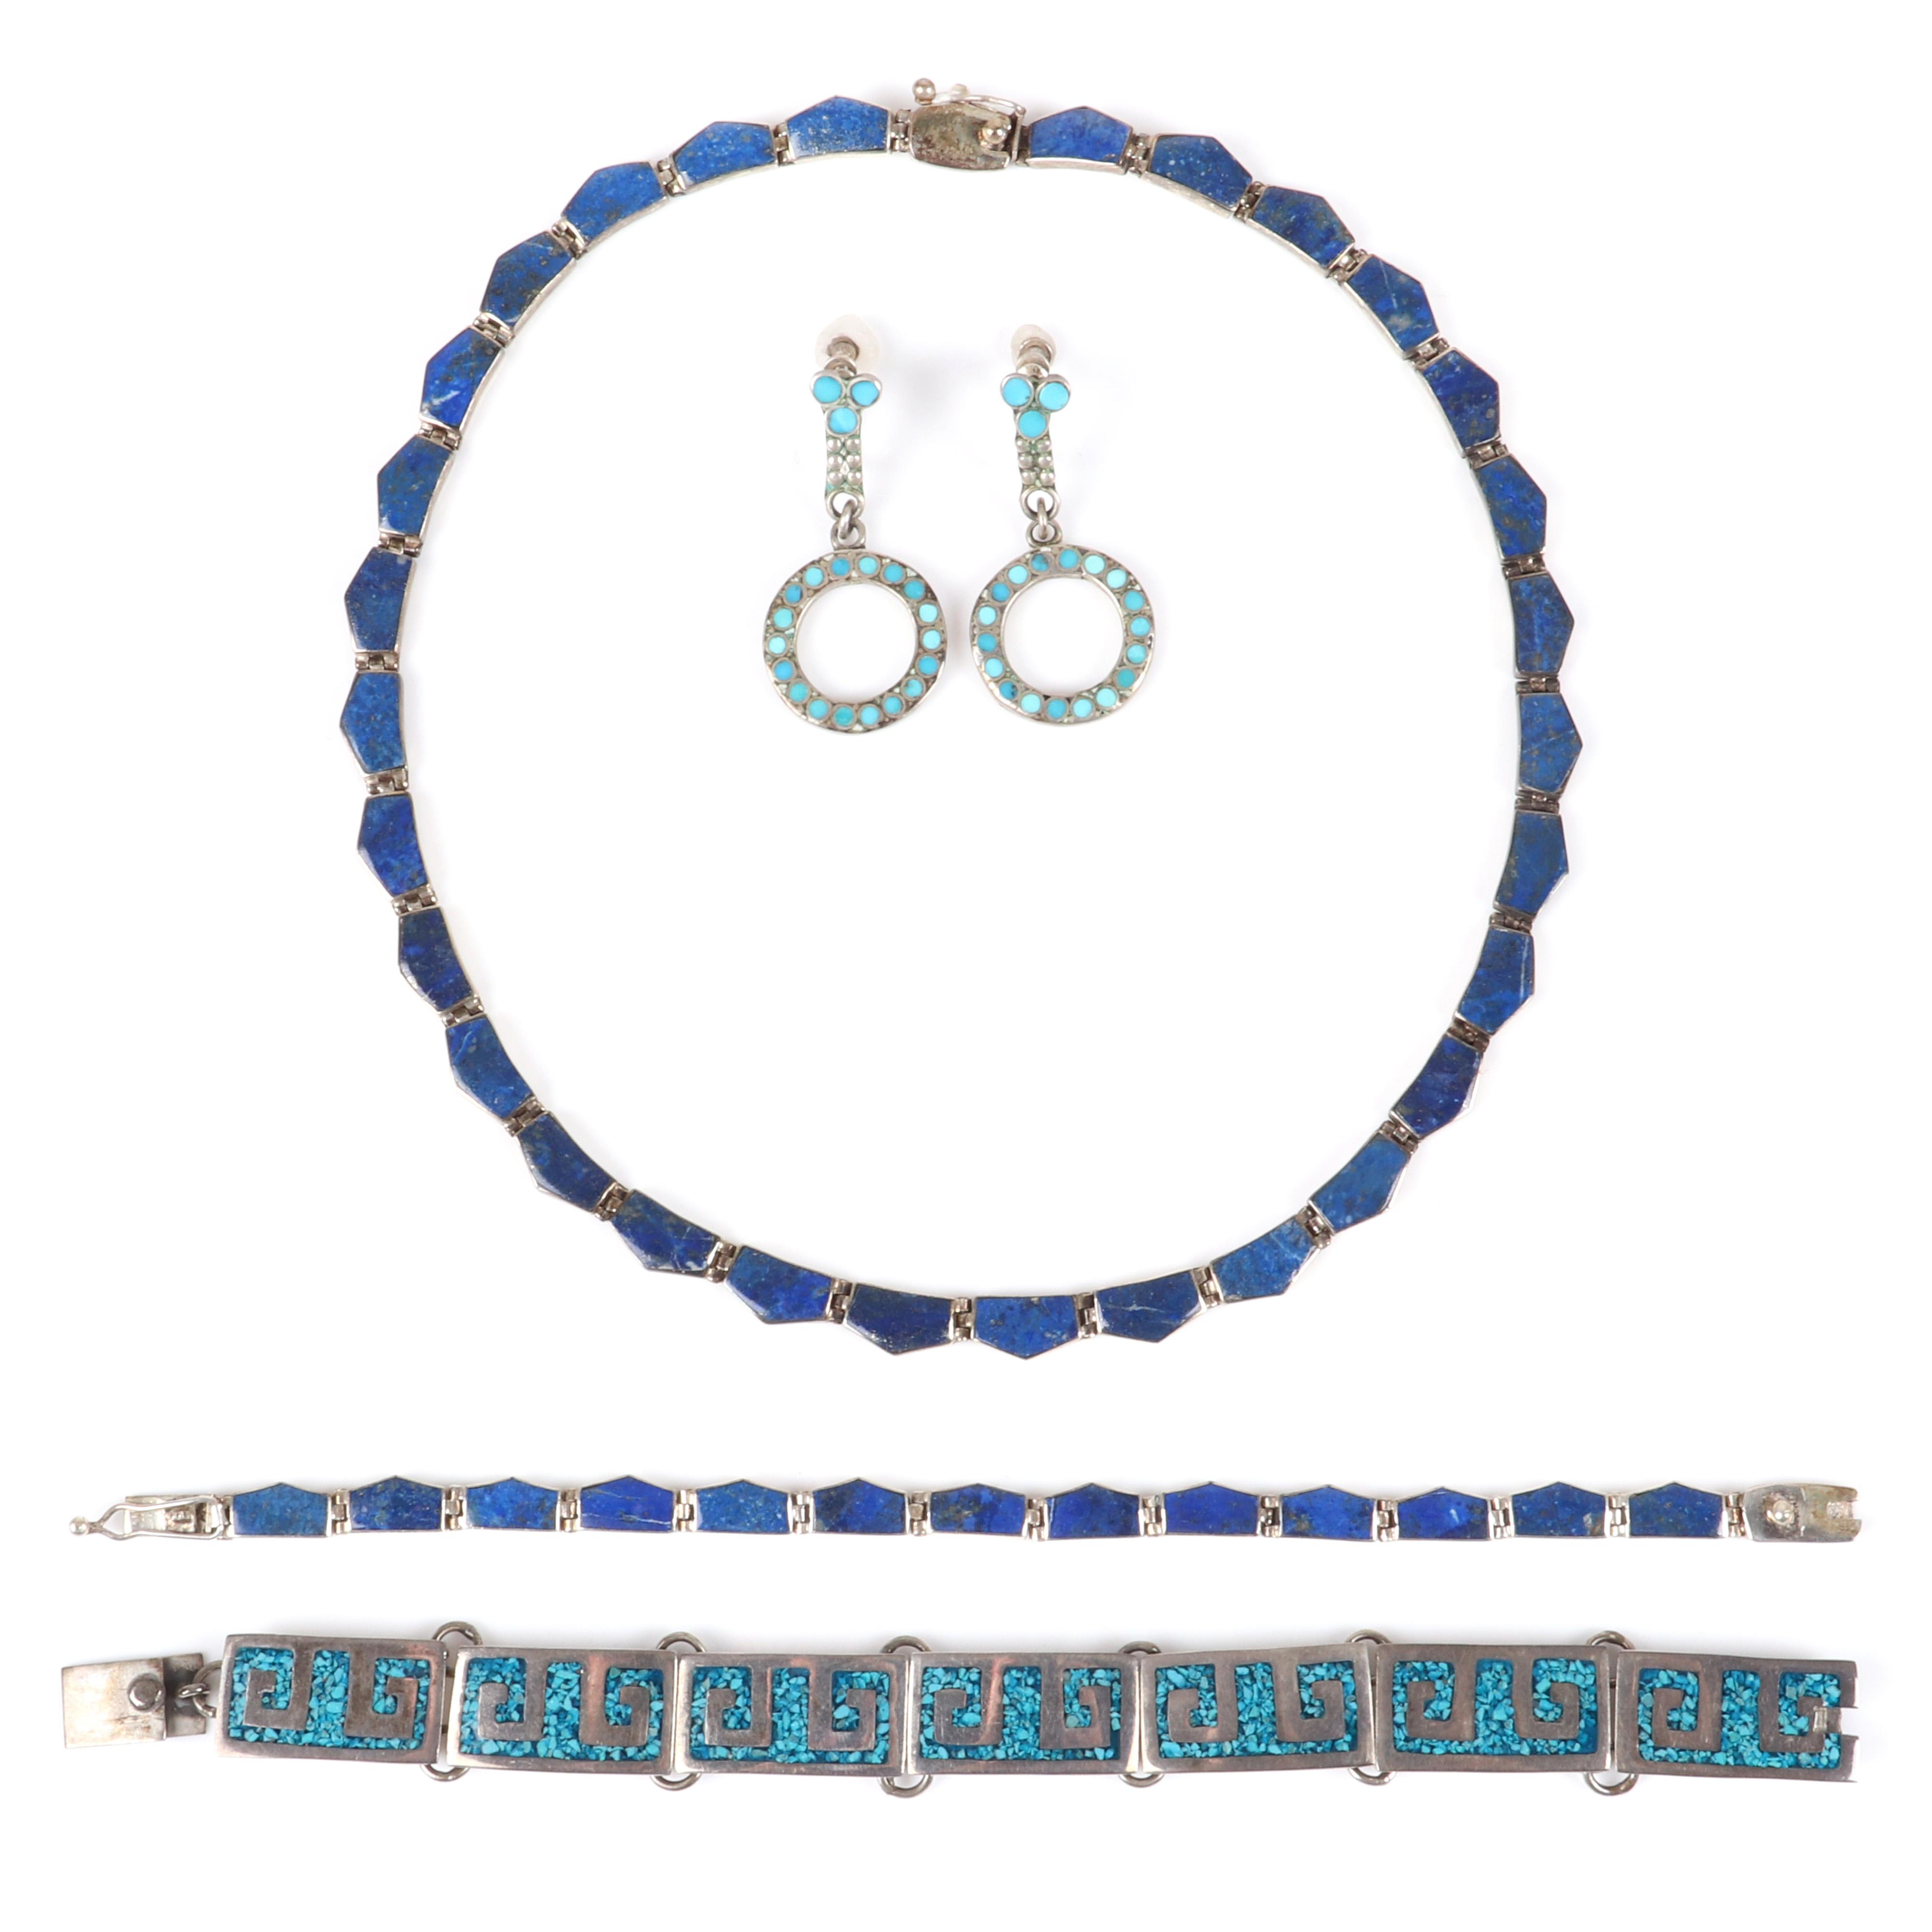 "Mexican Sterling & inlaid stone 4pc group: modernist 980 silver lapis inlay wedge choker necklace and bracelet, Taxco TC-60 turquoise mosaic bracelet, turquoise circle drop earrings. 16""L (necklace), 7"" (bracelets)"